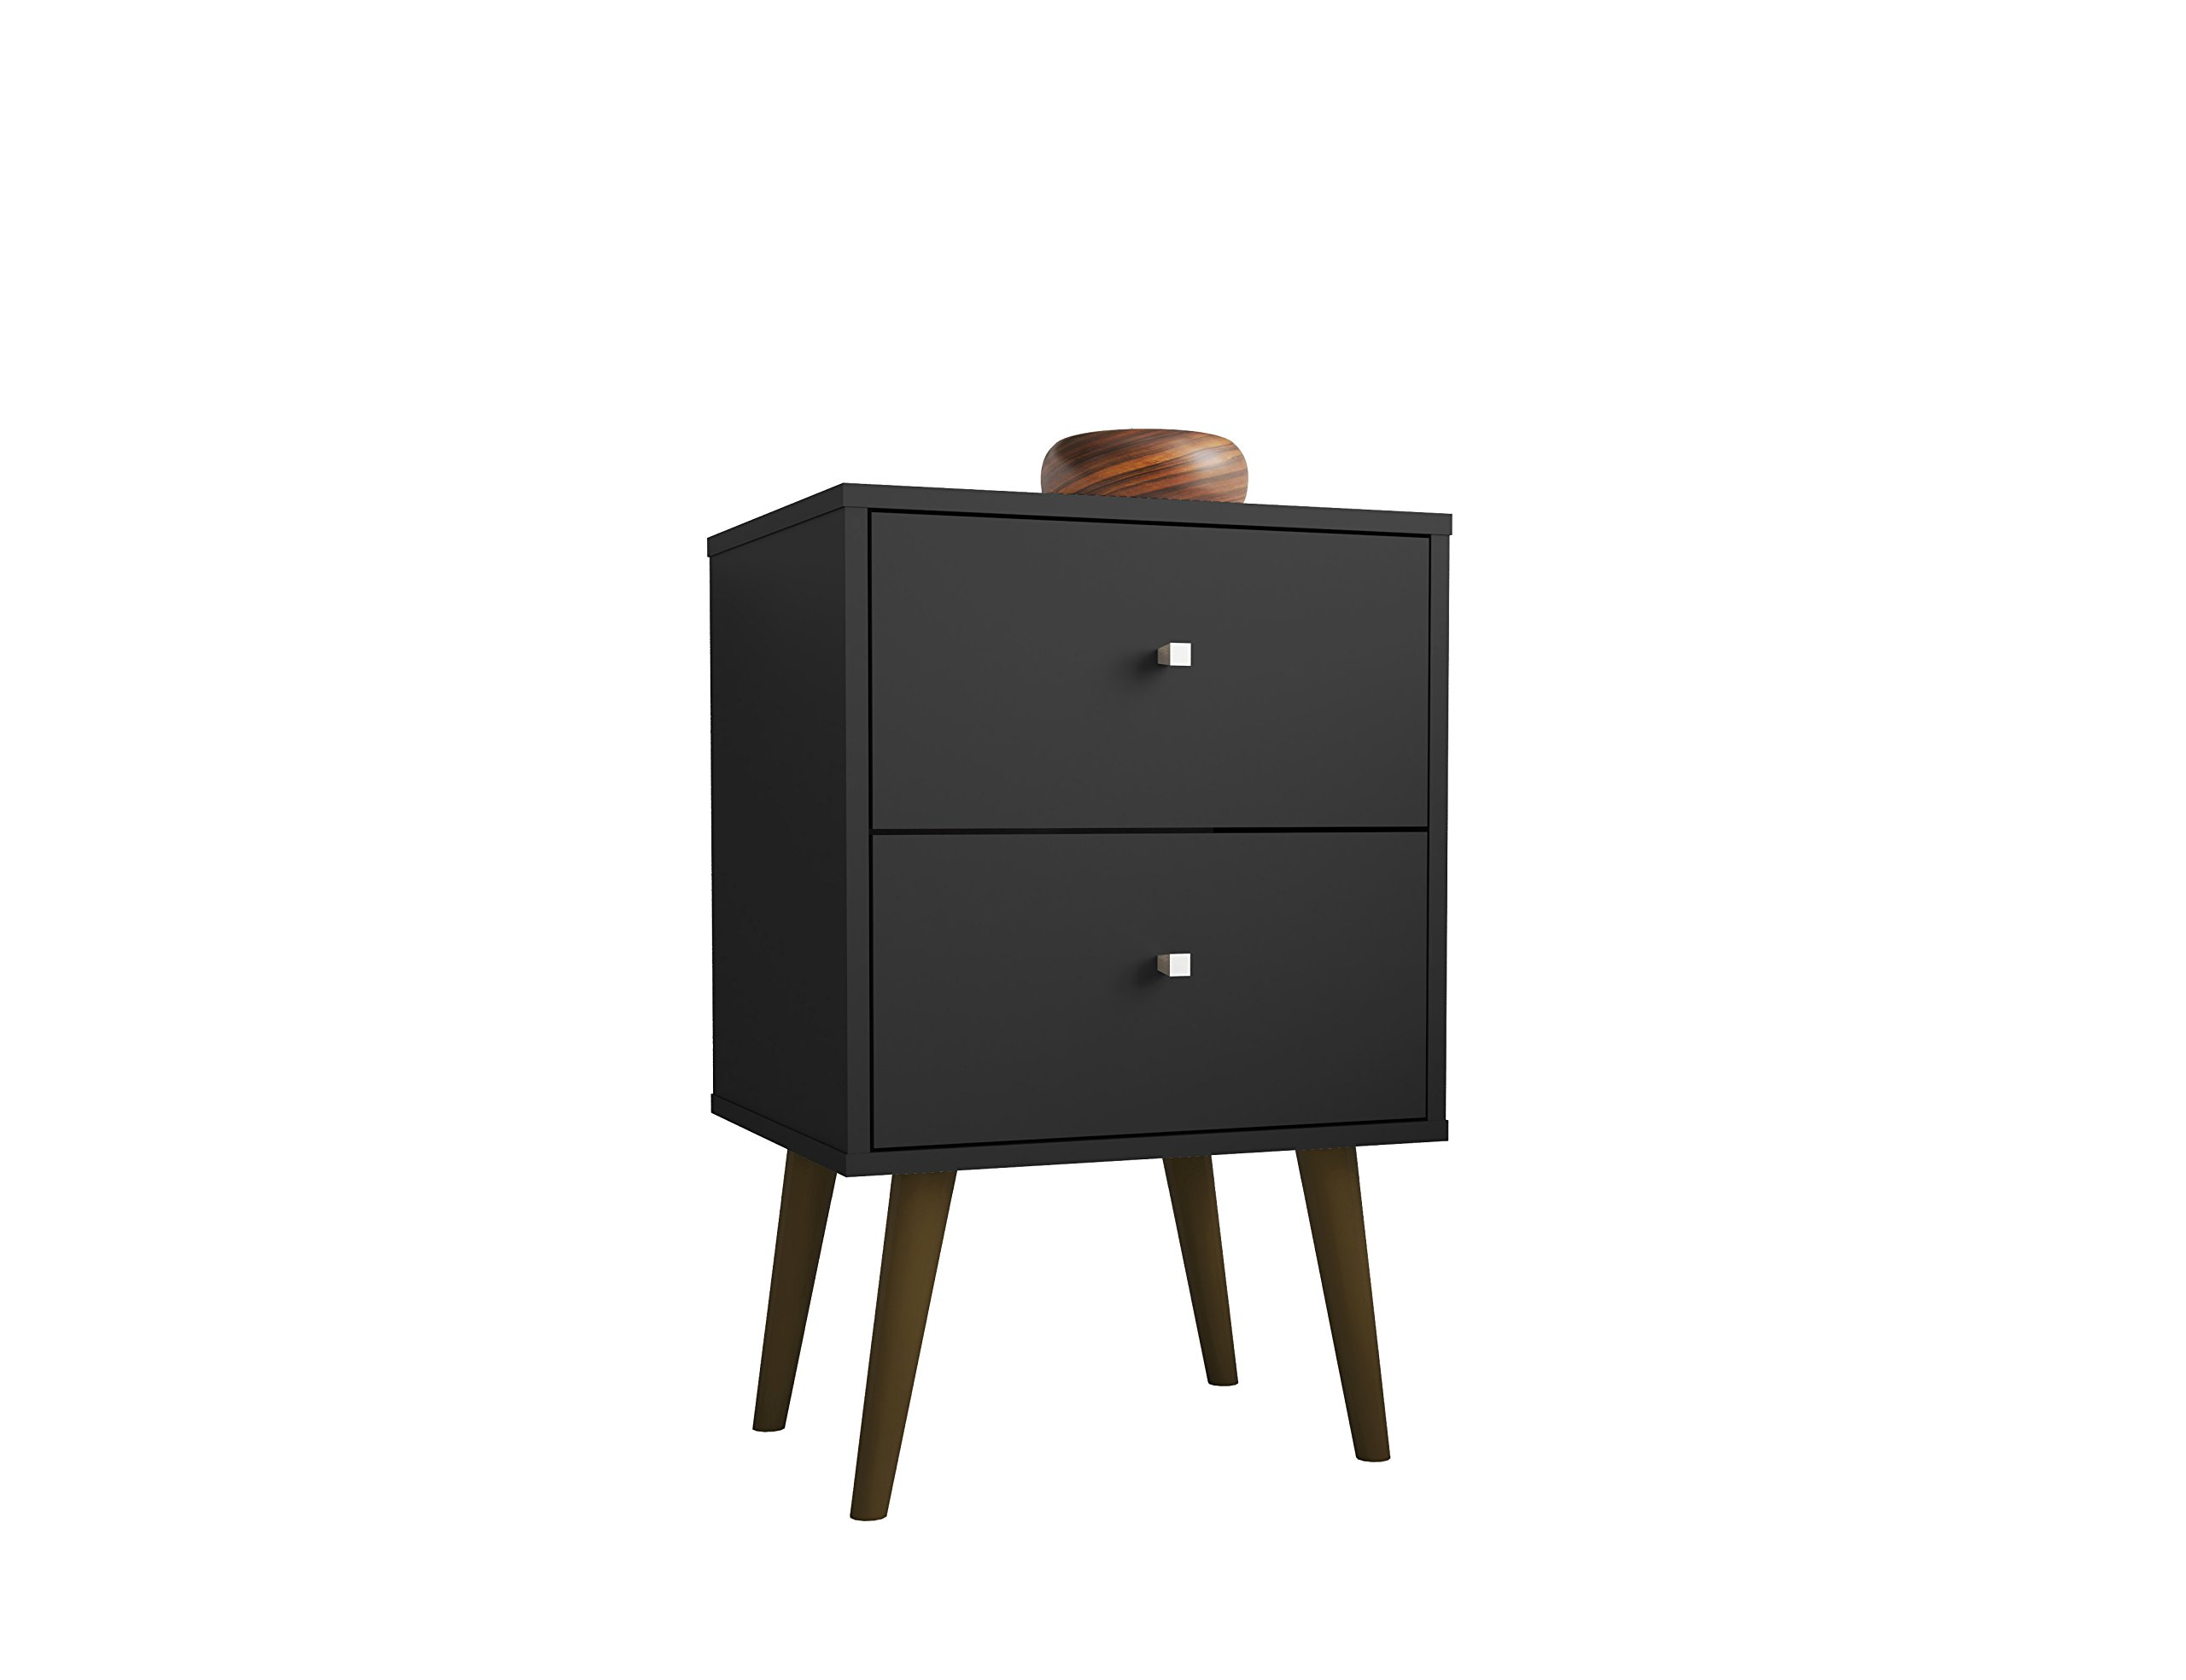 Manhattan Comfort Liberty Modern 2 Drawer Bedroom Nightstand/End Table, Black by Manhattan Comfort